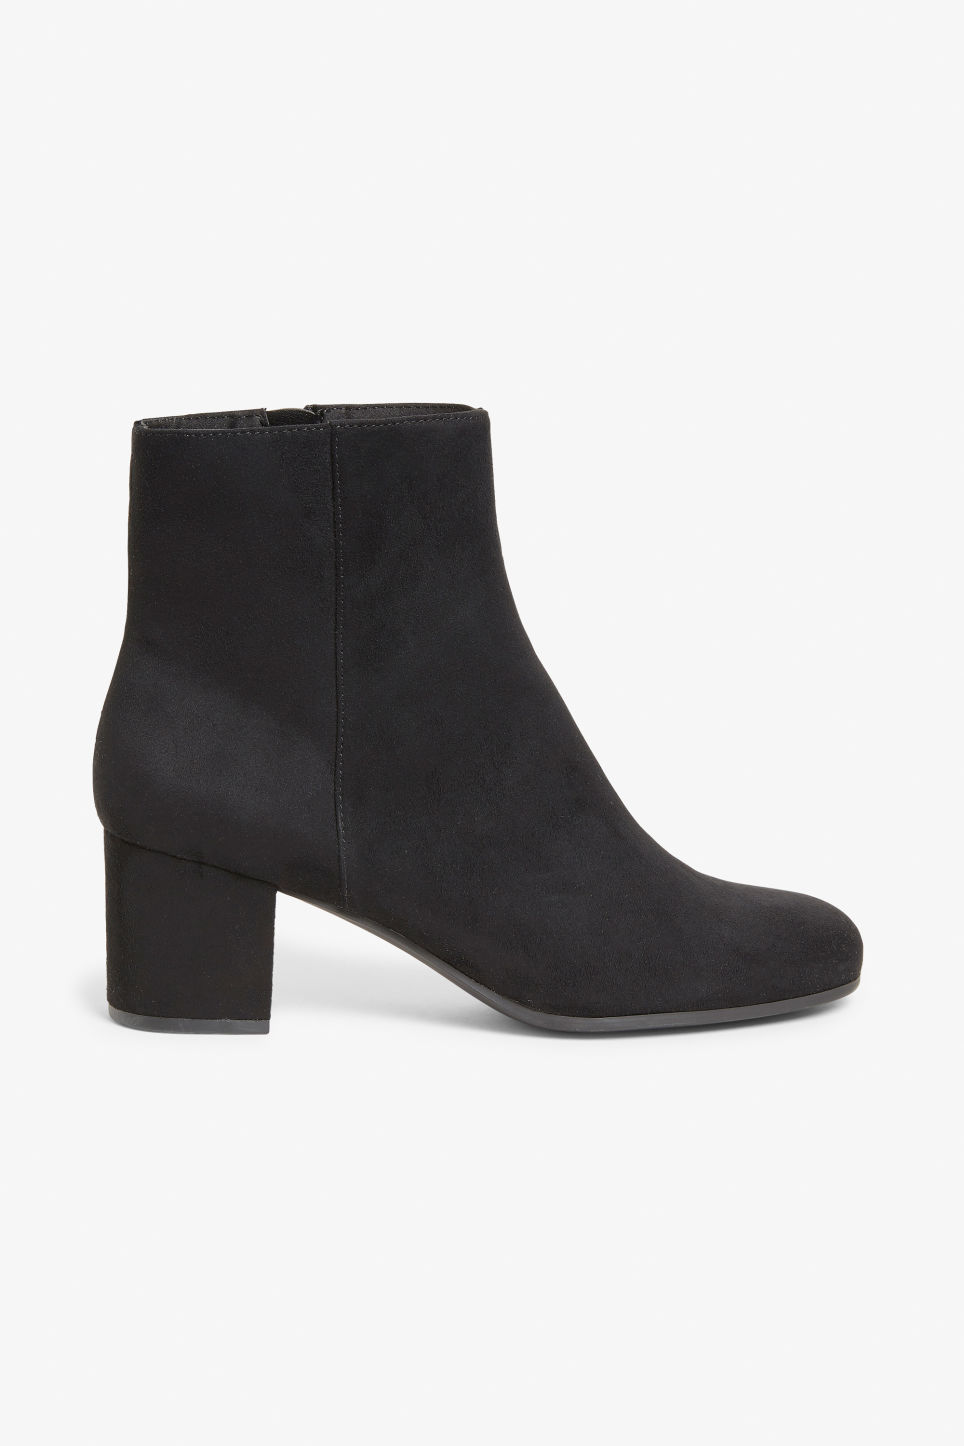 Detailed image of Monki classic ankle boots in black